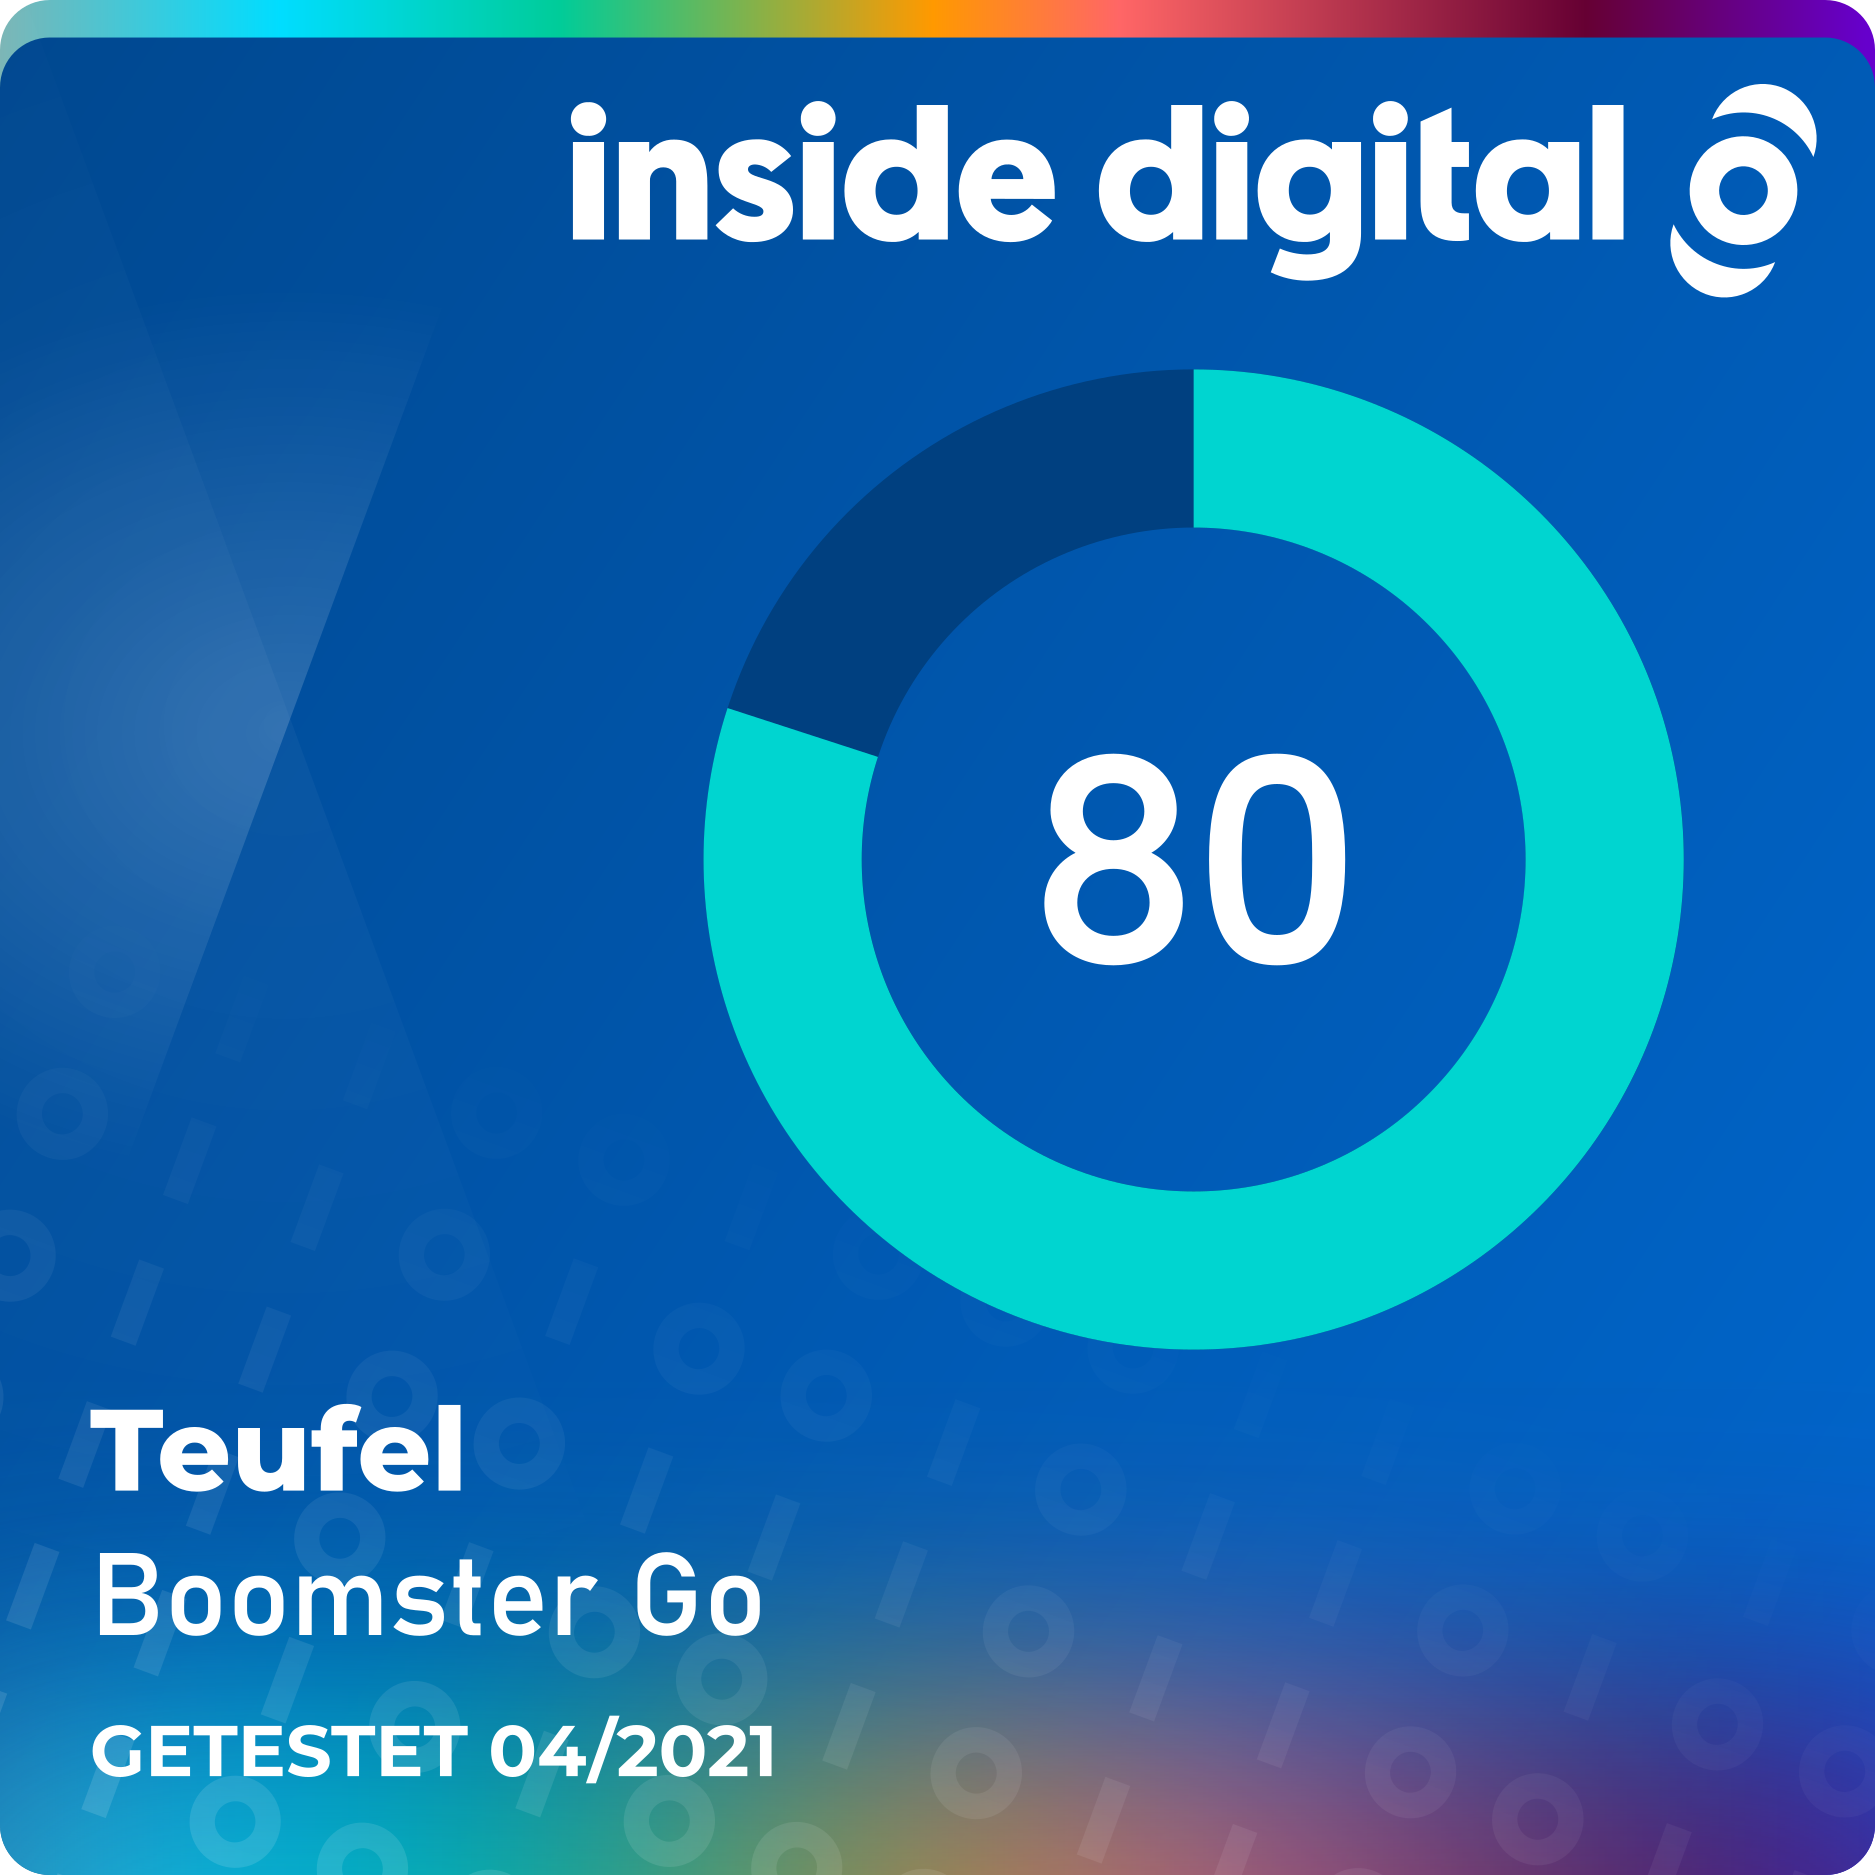 Teufel Boomster Go im Test